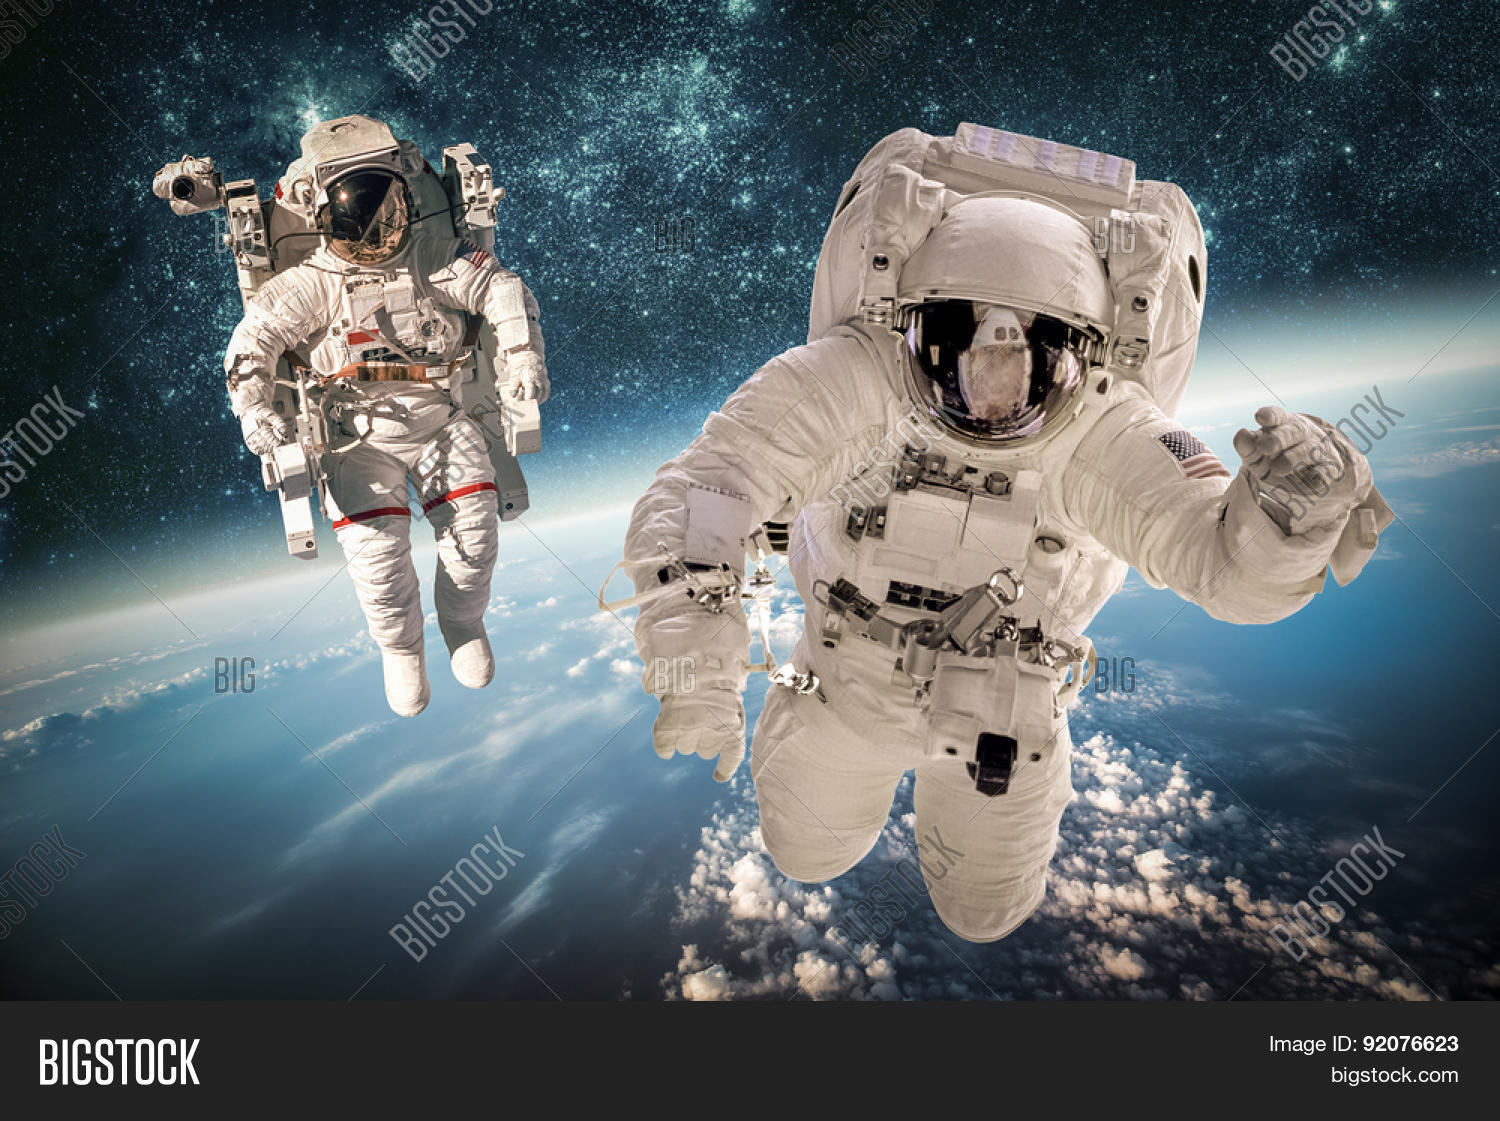 astronaut outer space appears - photo #5